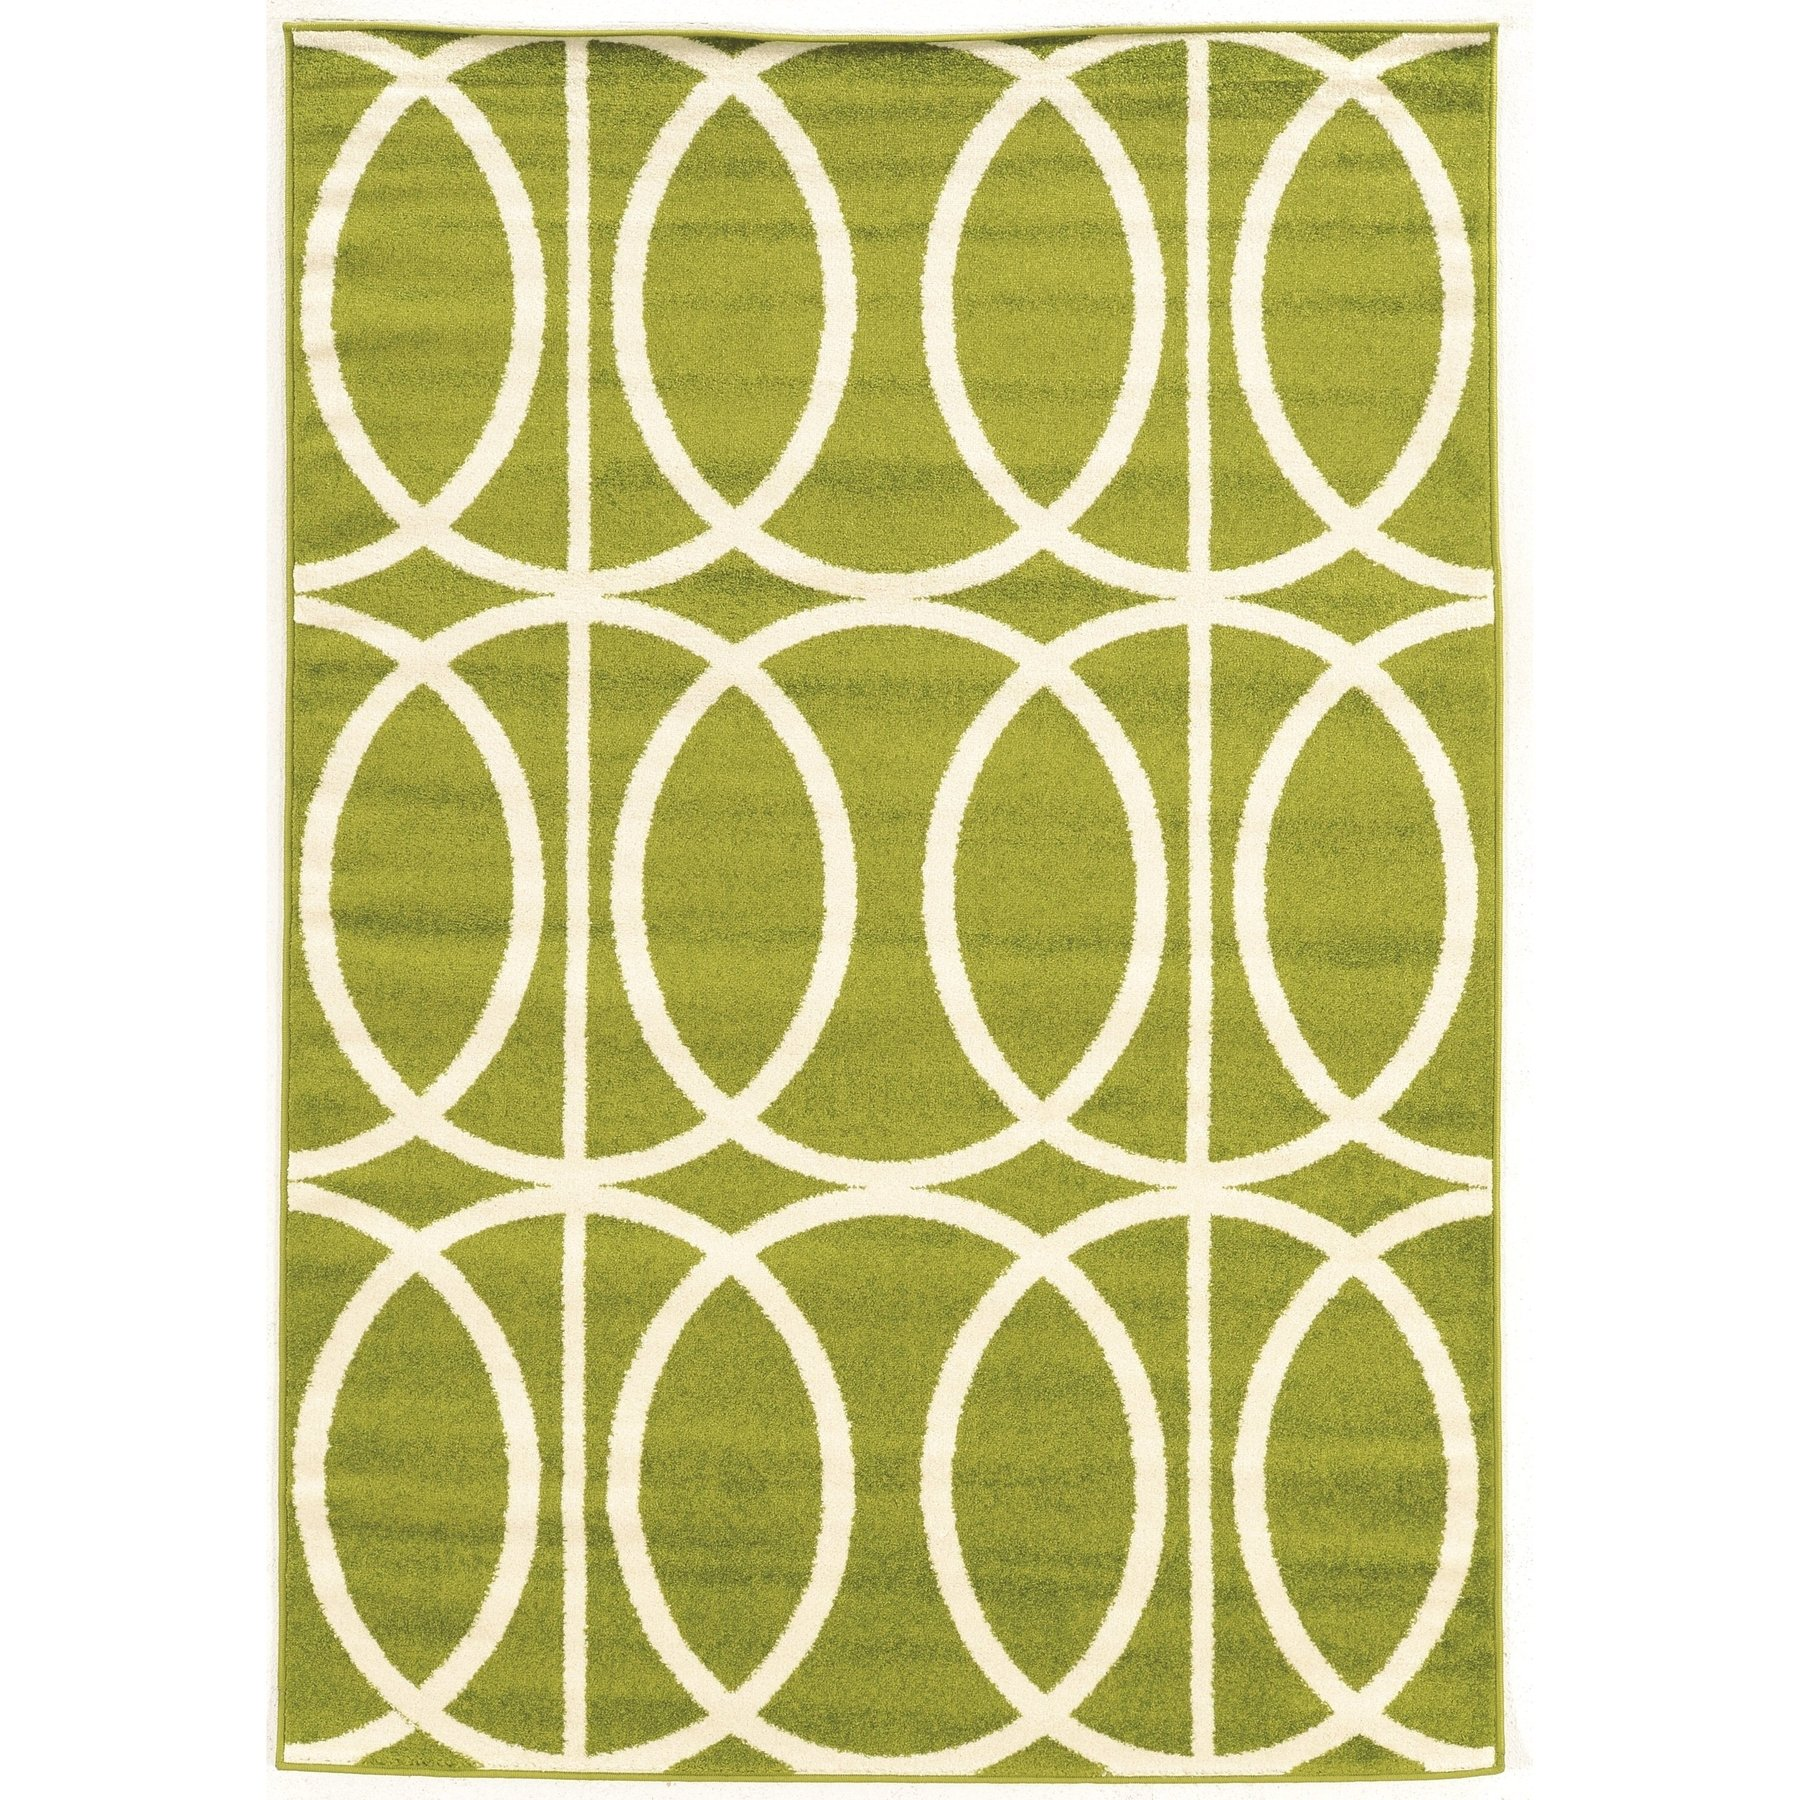 Claremont Rug - Green/Cream